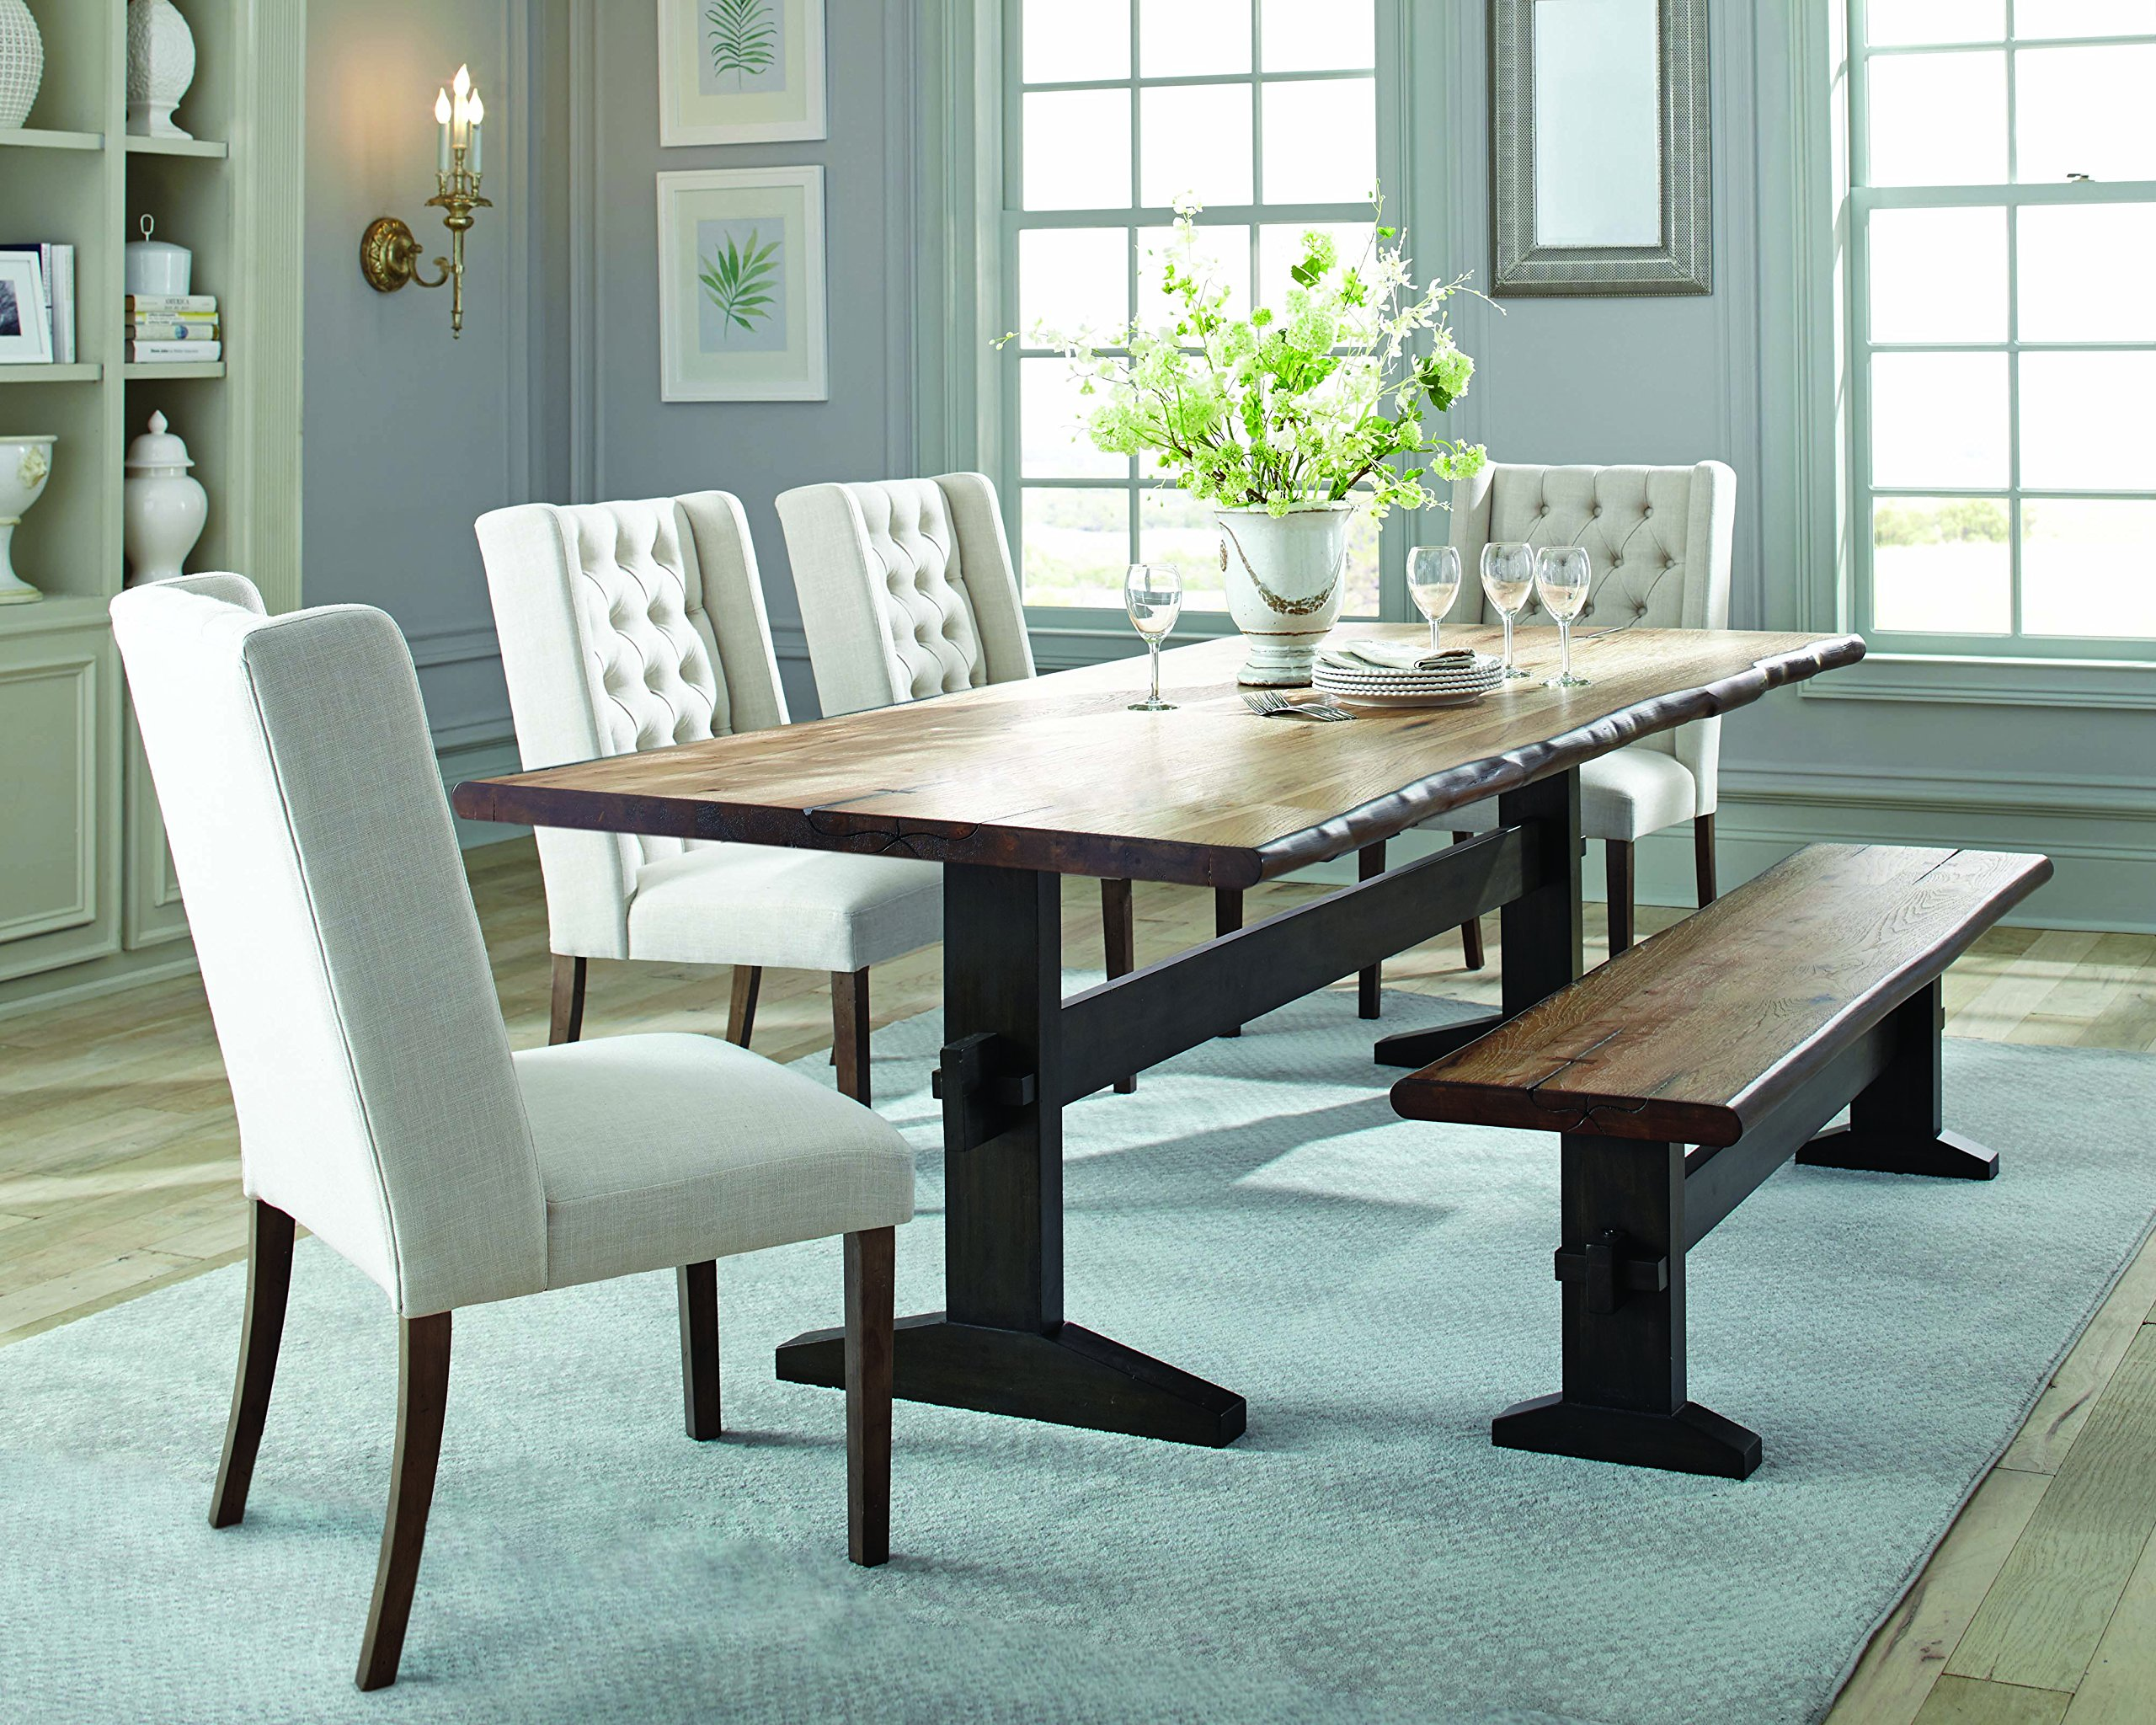 Burnham Two-Tone Live Edge Dining Bench with Trestle Base Natural Honey and Espresso by Scott Living (Image #1)